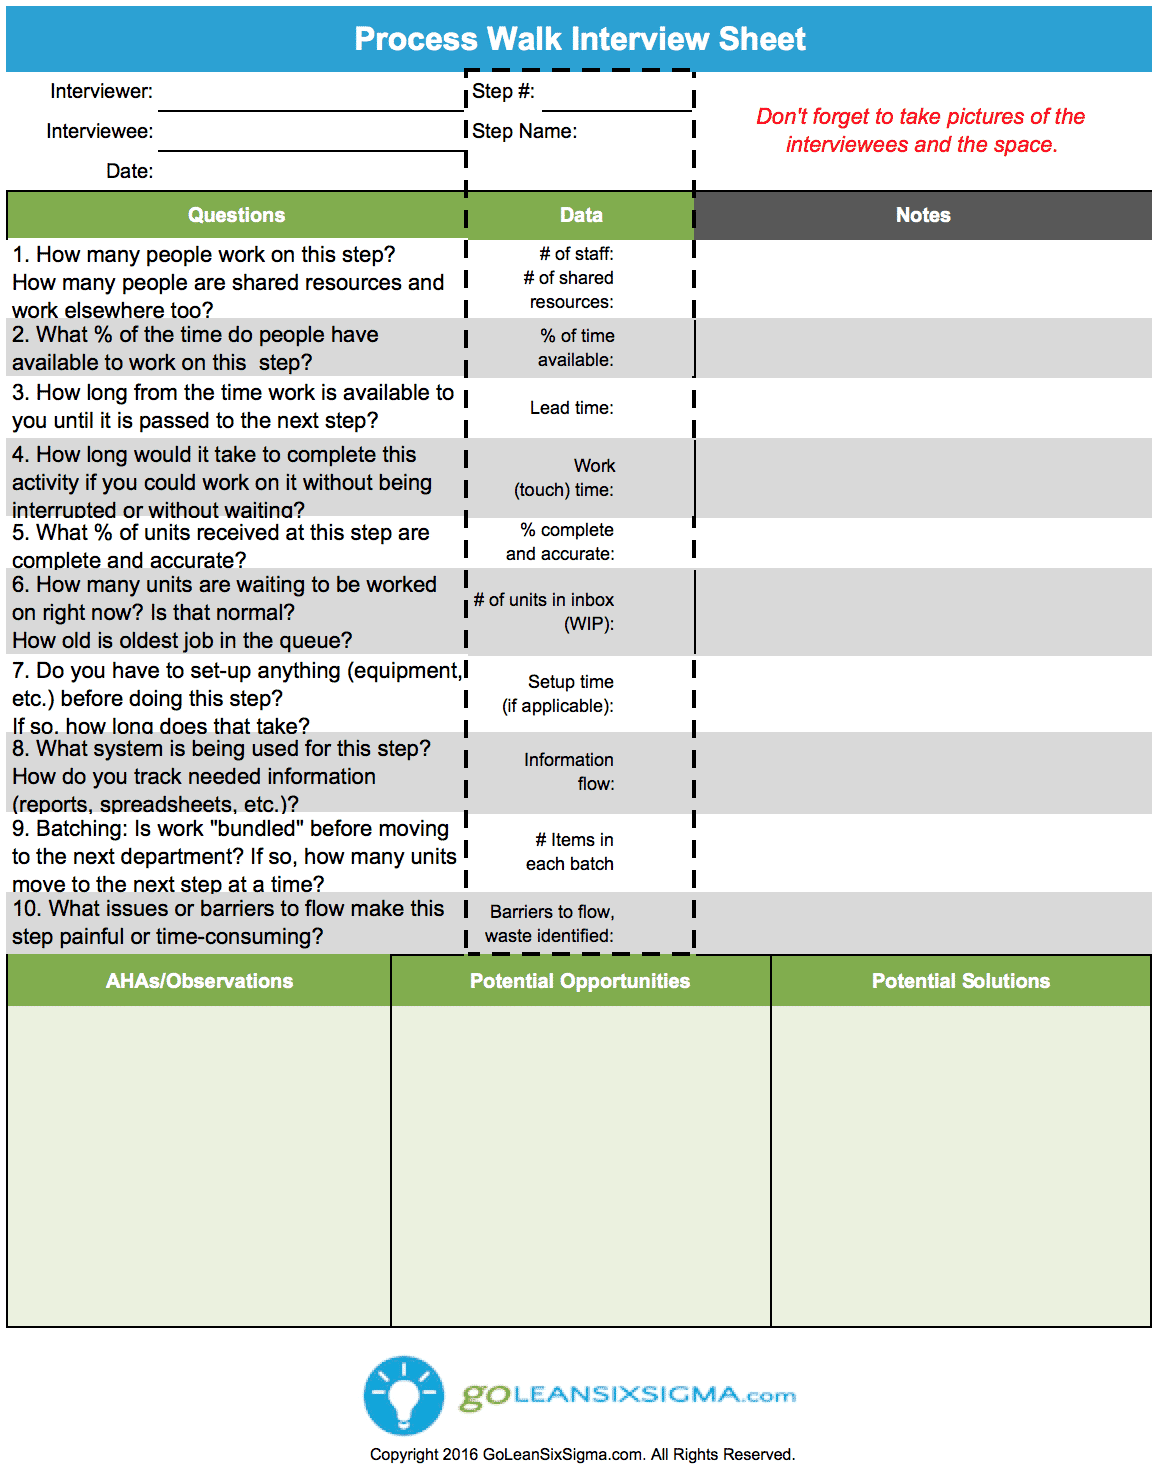 Process Walk Interview Sheet Aka Gemba Walk Interview